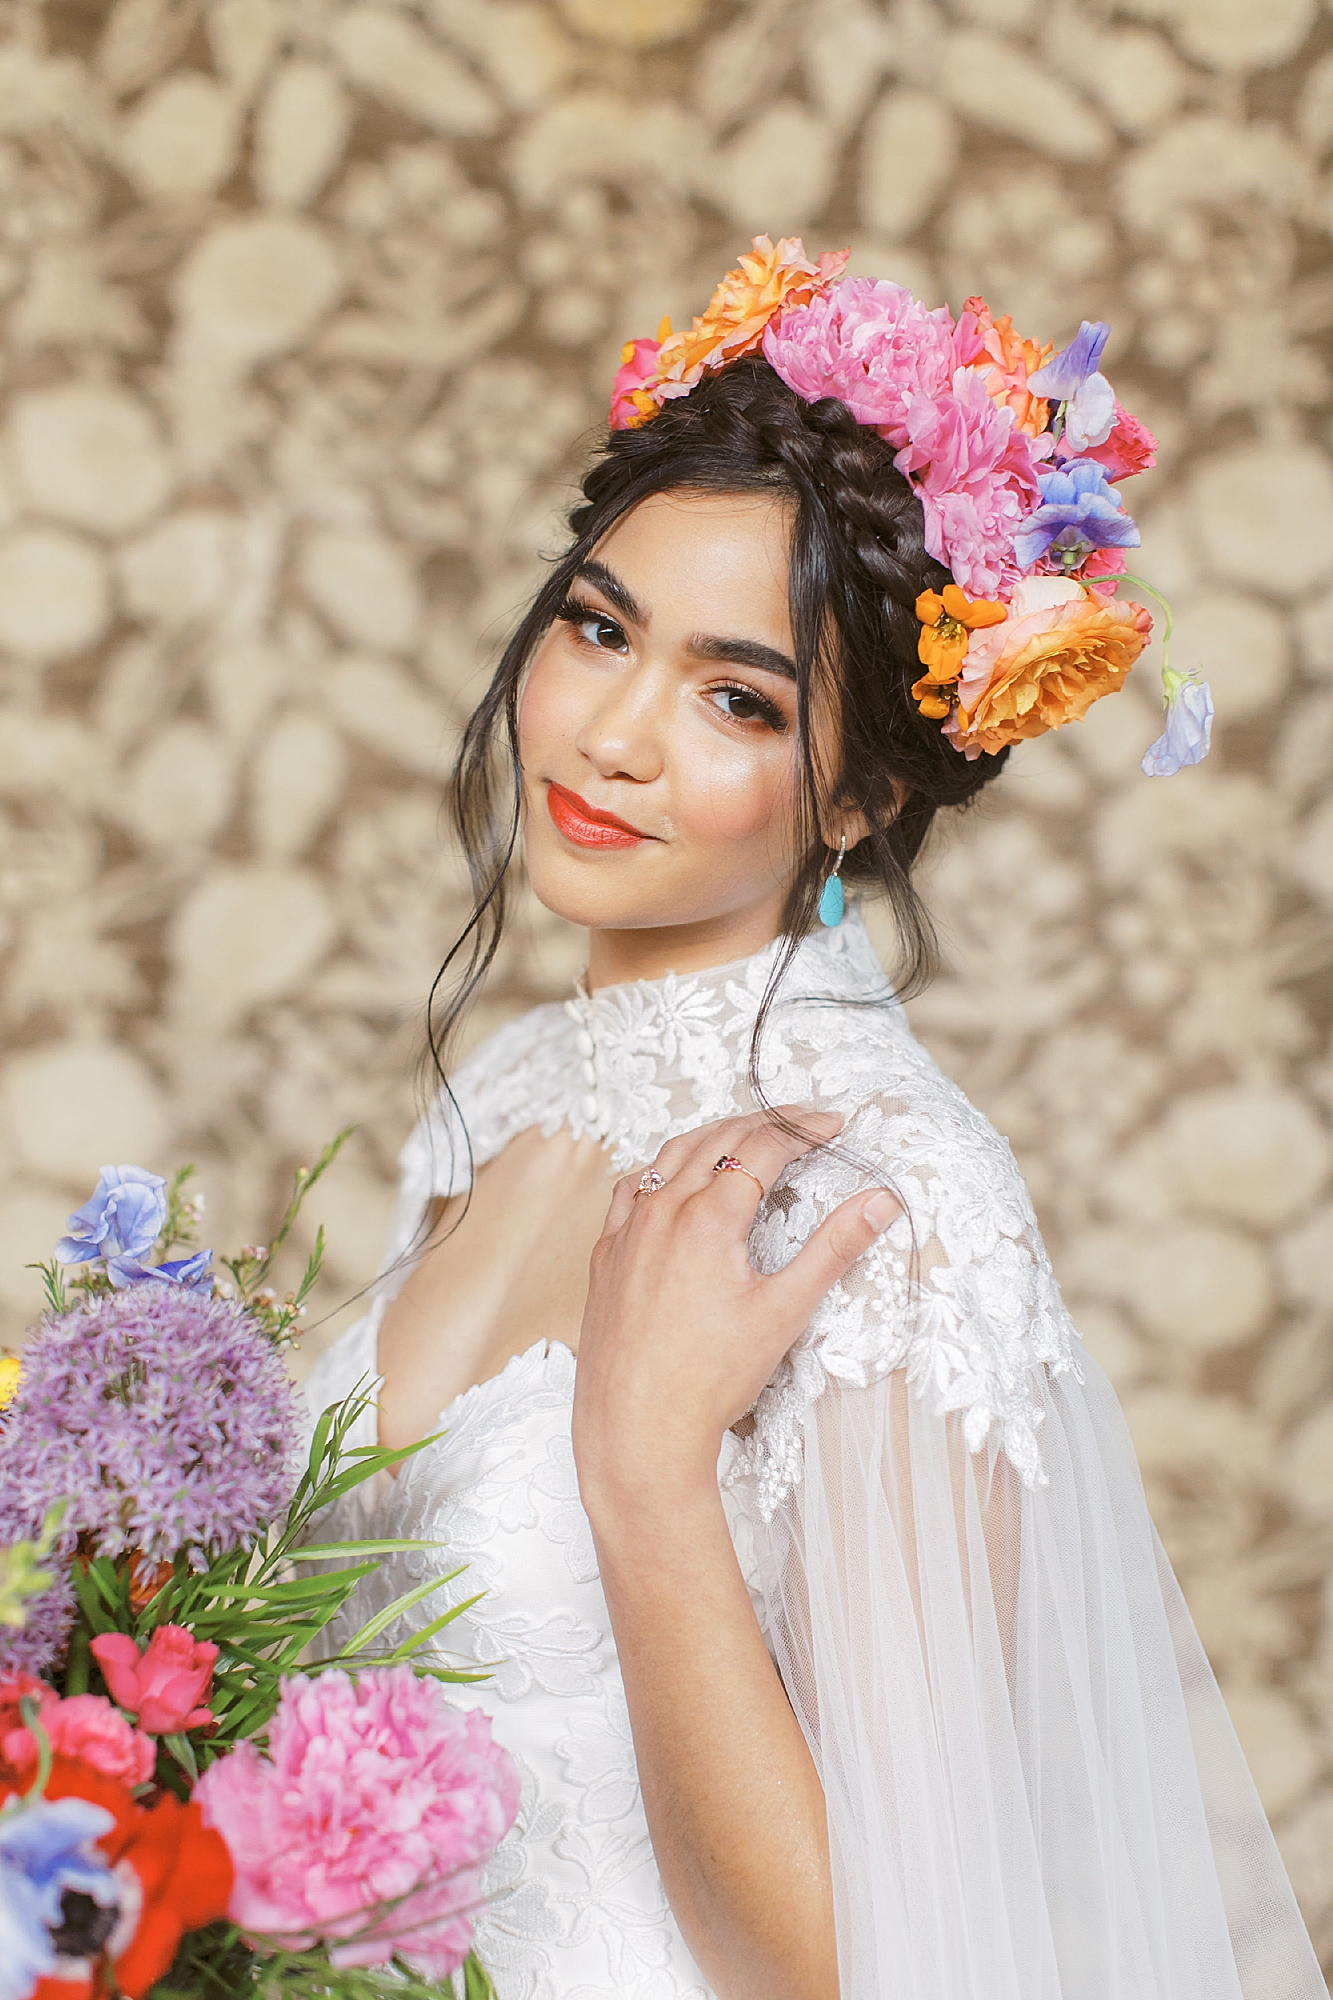 Vibrant and Colorful Frida Kahlo Inspired Wedding Photography by Magdalena Studios 0015